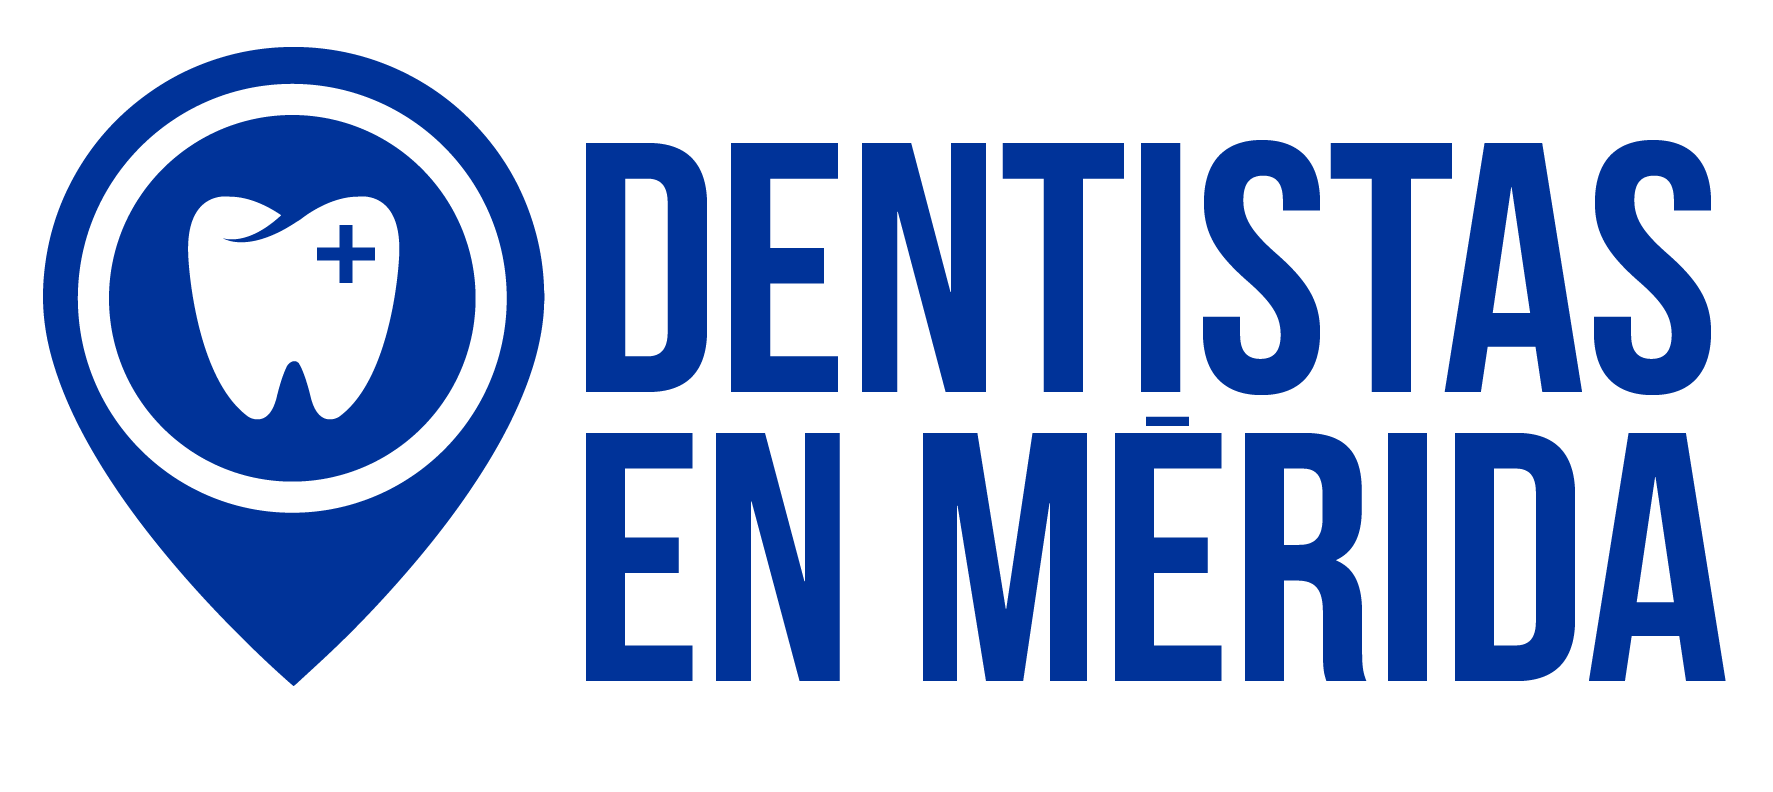 Dentistas en Merida